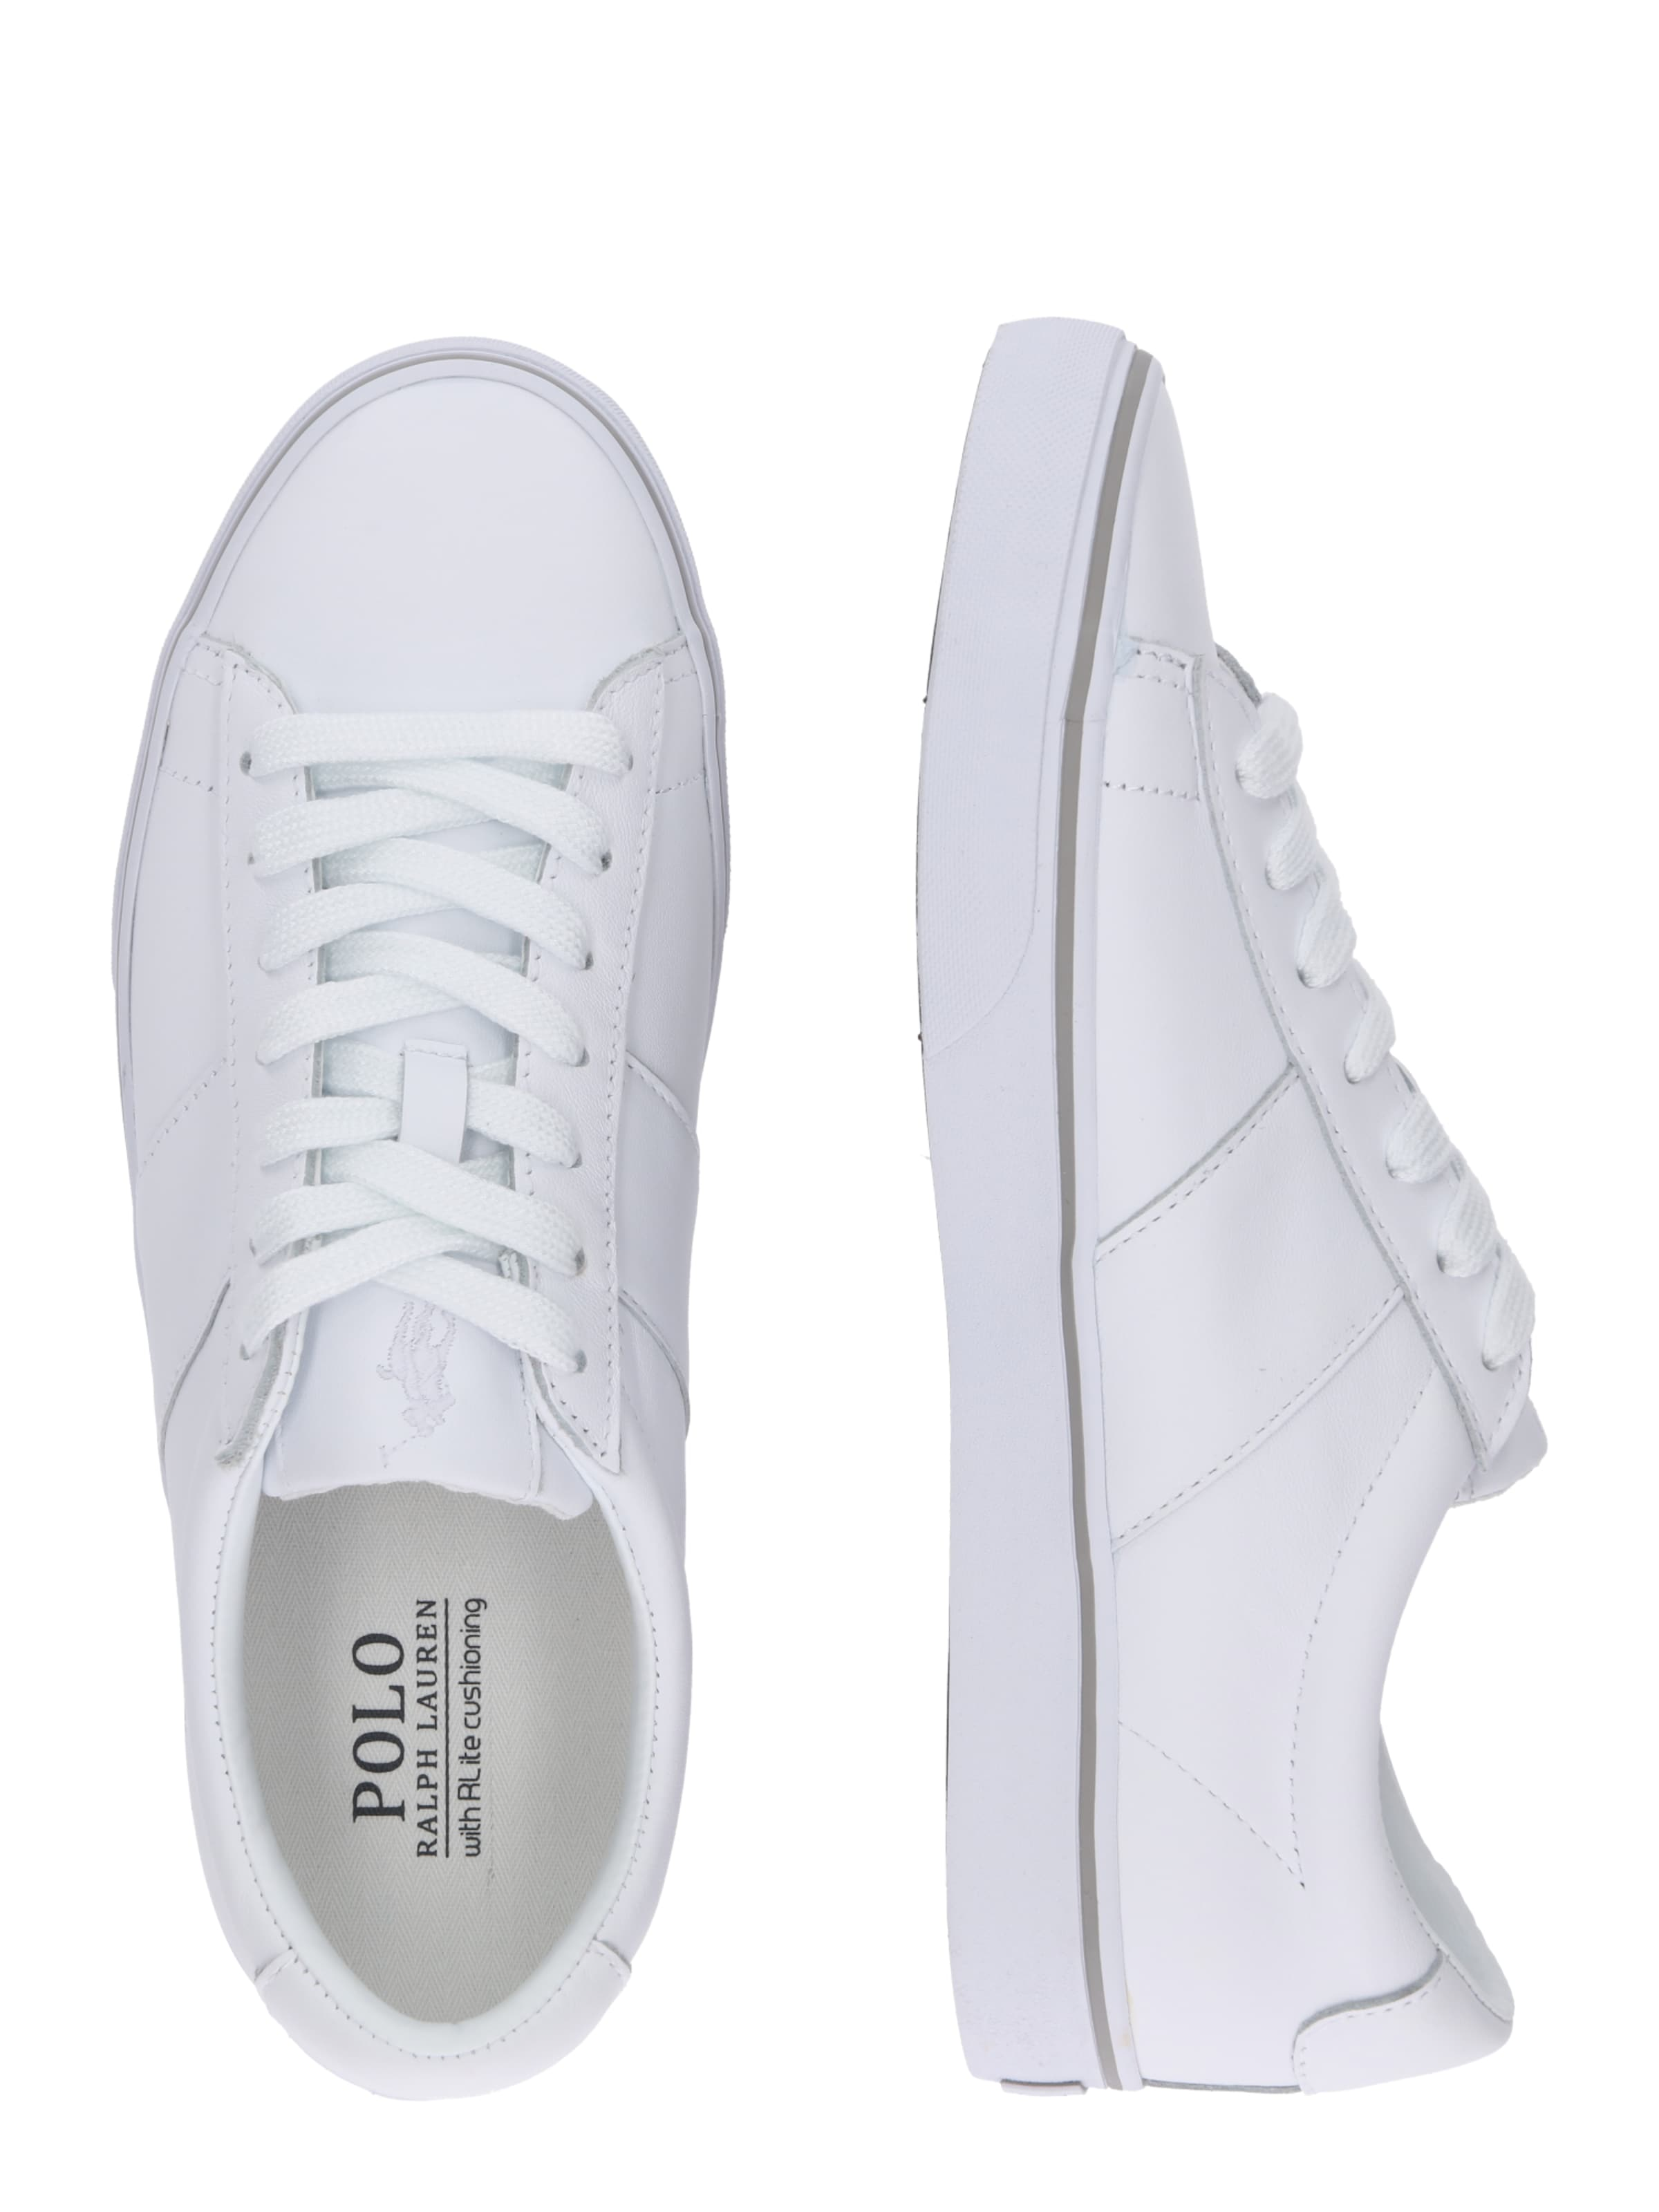 Lauren Sneaker Leather' Weiß Ralph Polo 'sayer In ymN80wOnv